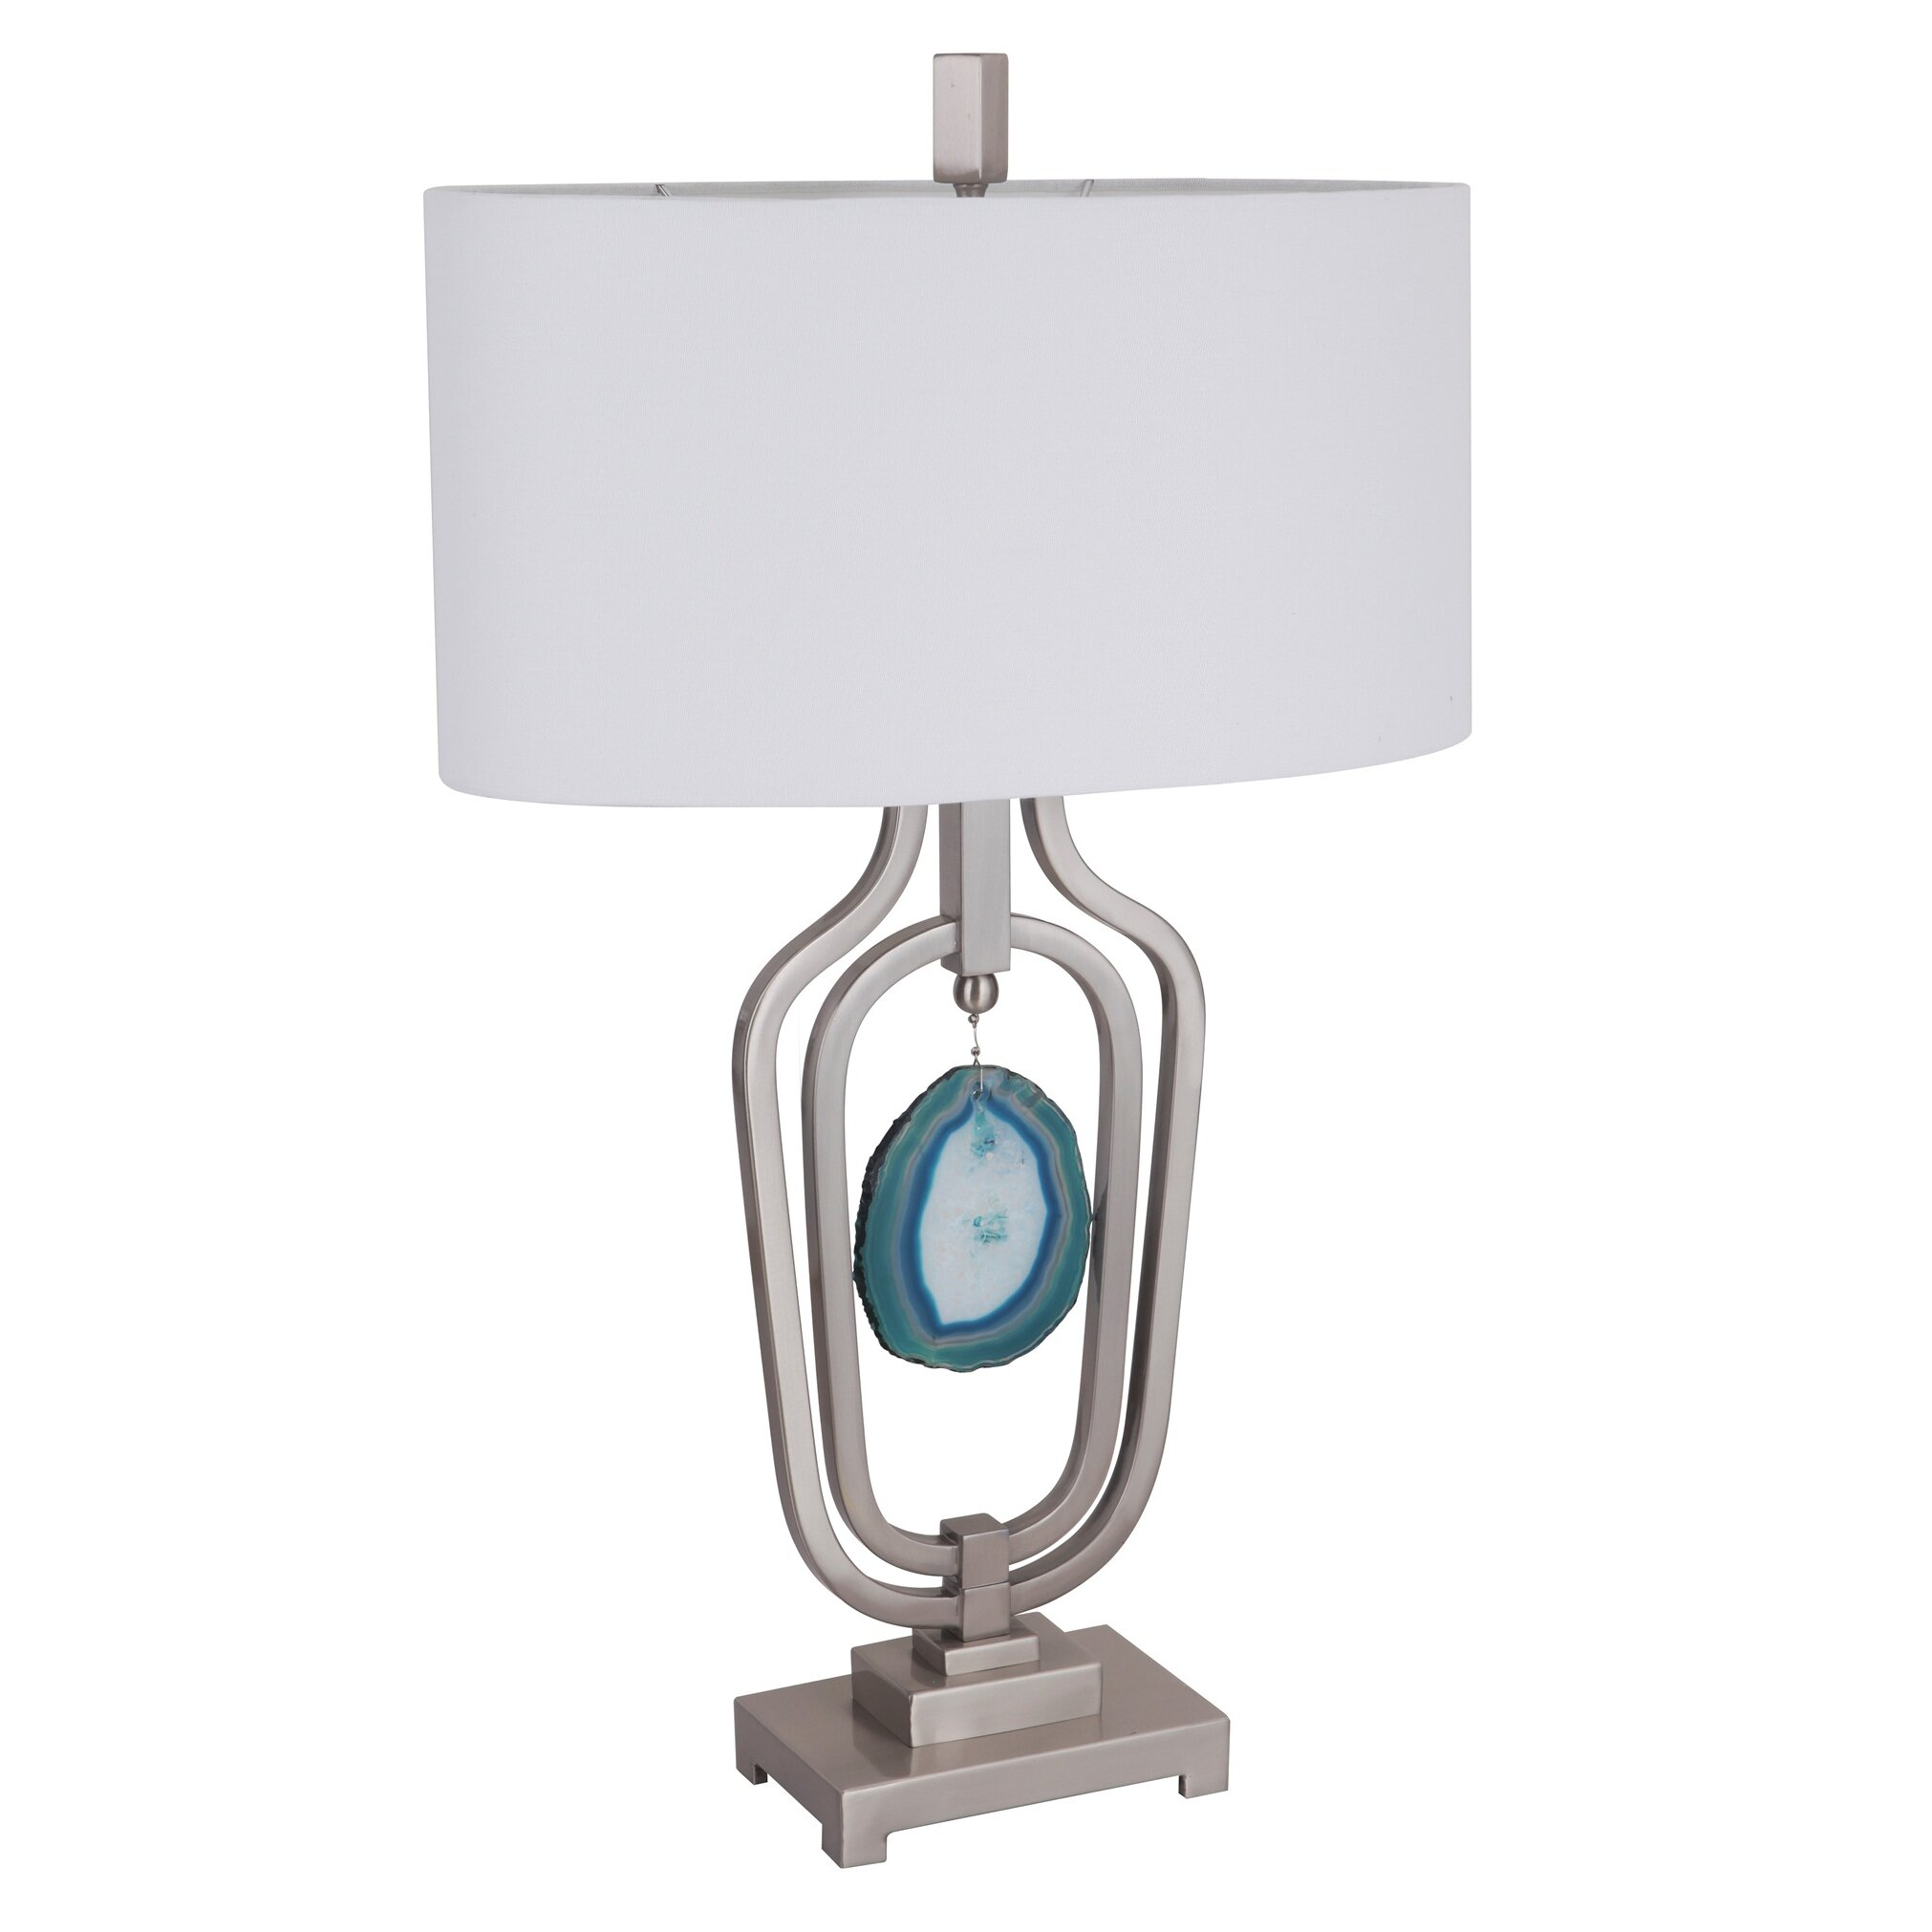 New  Desk Lamp Review  Gallery And Store Of Table Lamps Floor Lamps Etc